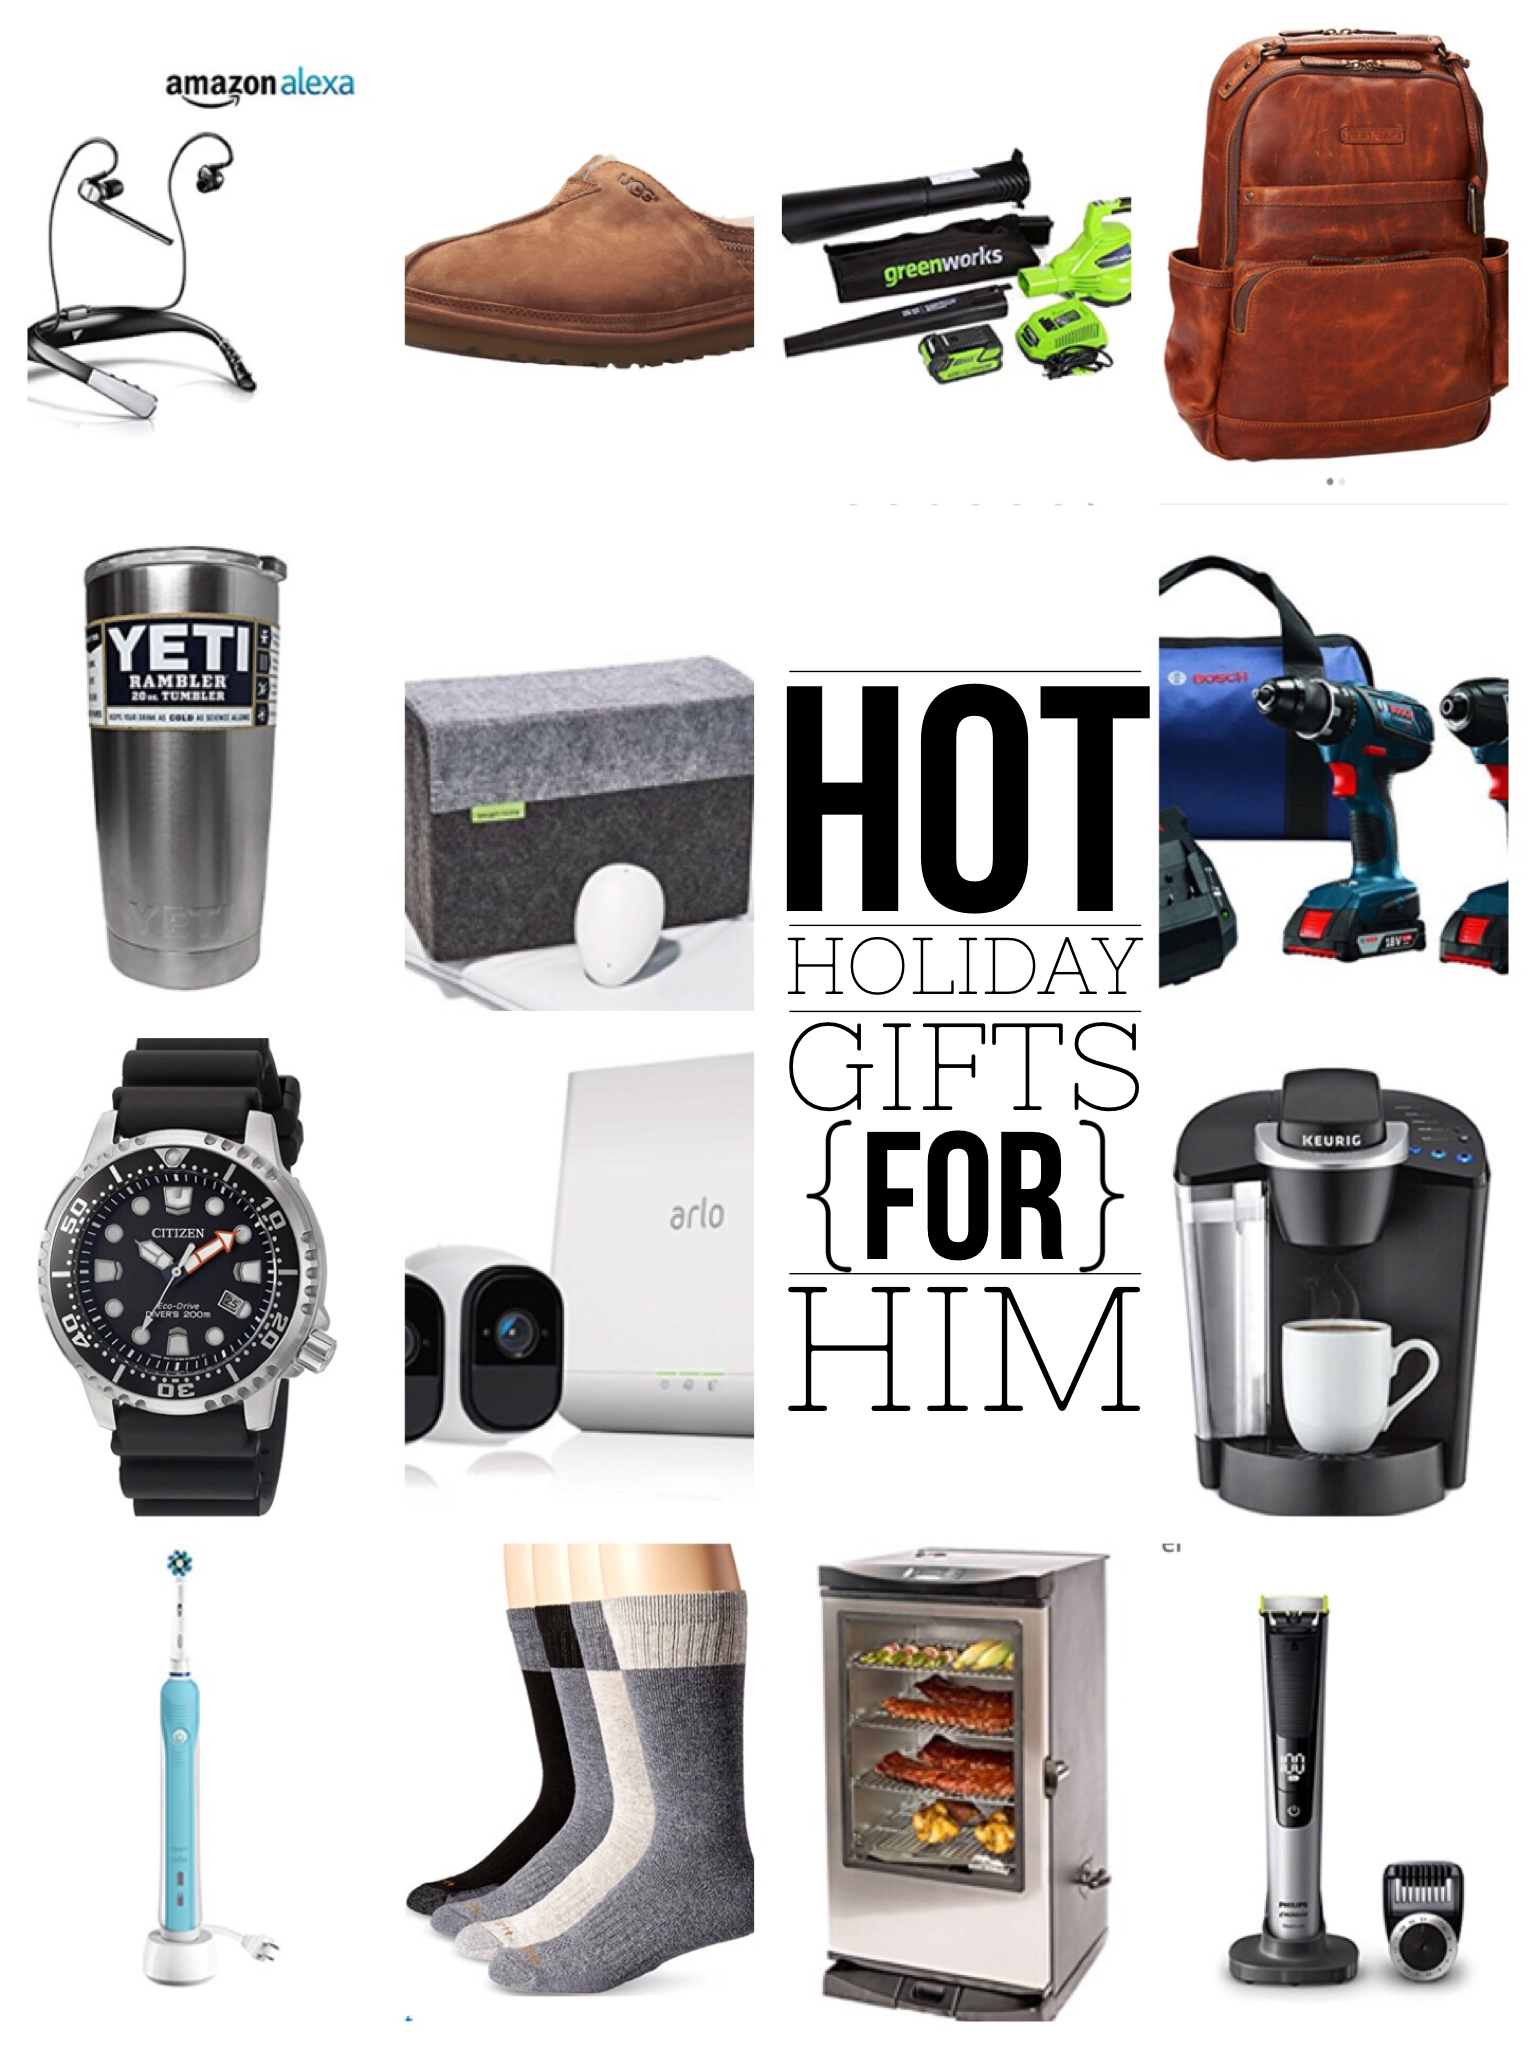 Gift for Husband, Gifts for Him Gift Guide for Holiday Gifts and Christmas Gifts via Misty Nelson, blogger and influencer @frostedevents frostedblog.com